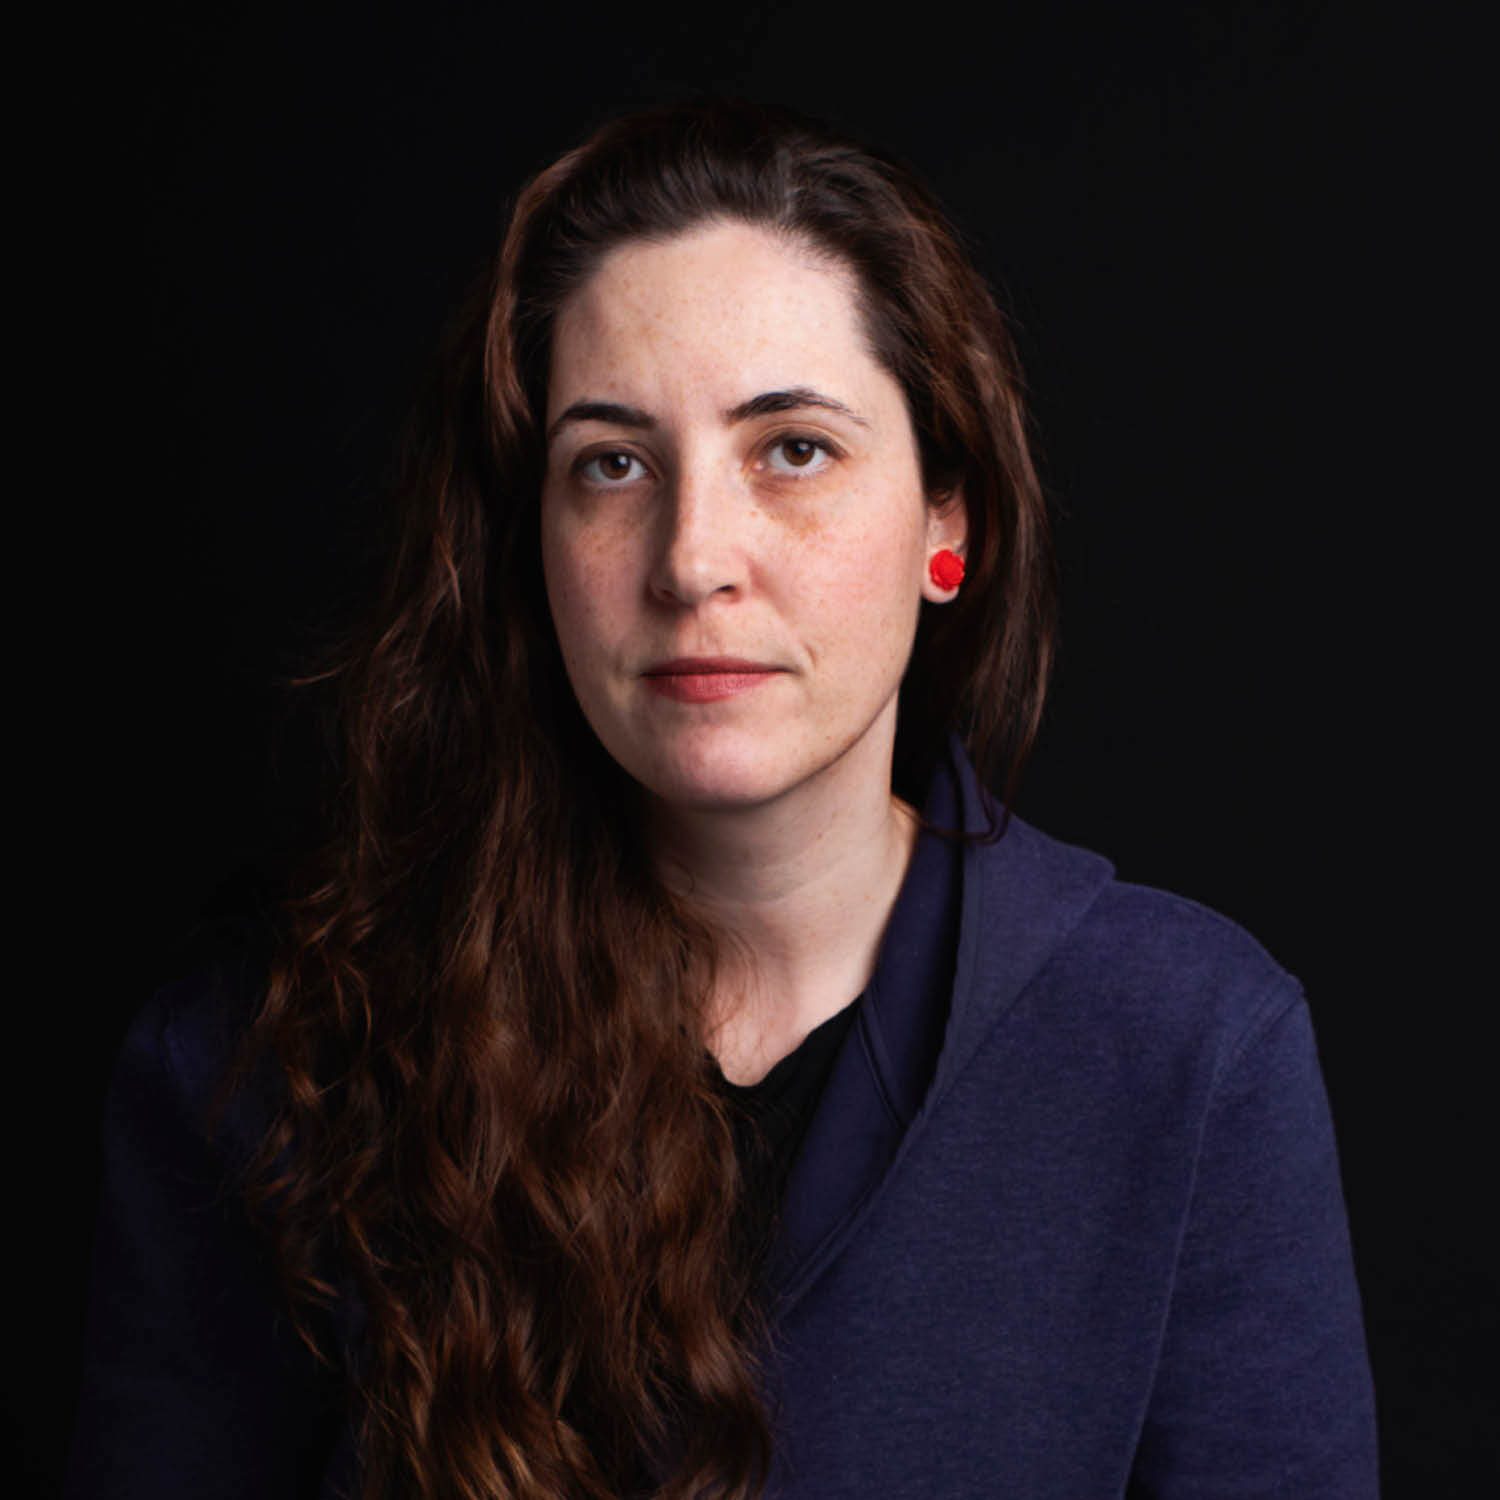 Portrait of Tiffany Shaw-Collinge looking at the camera, wearing a dark blue top and long dark brown hair